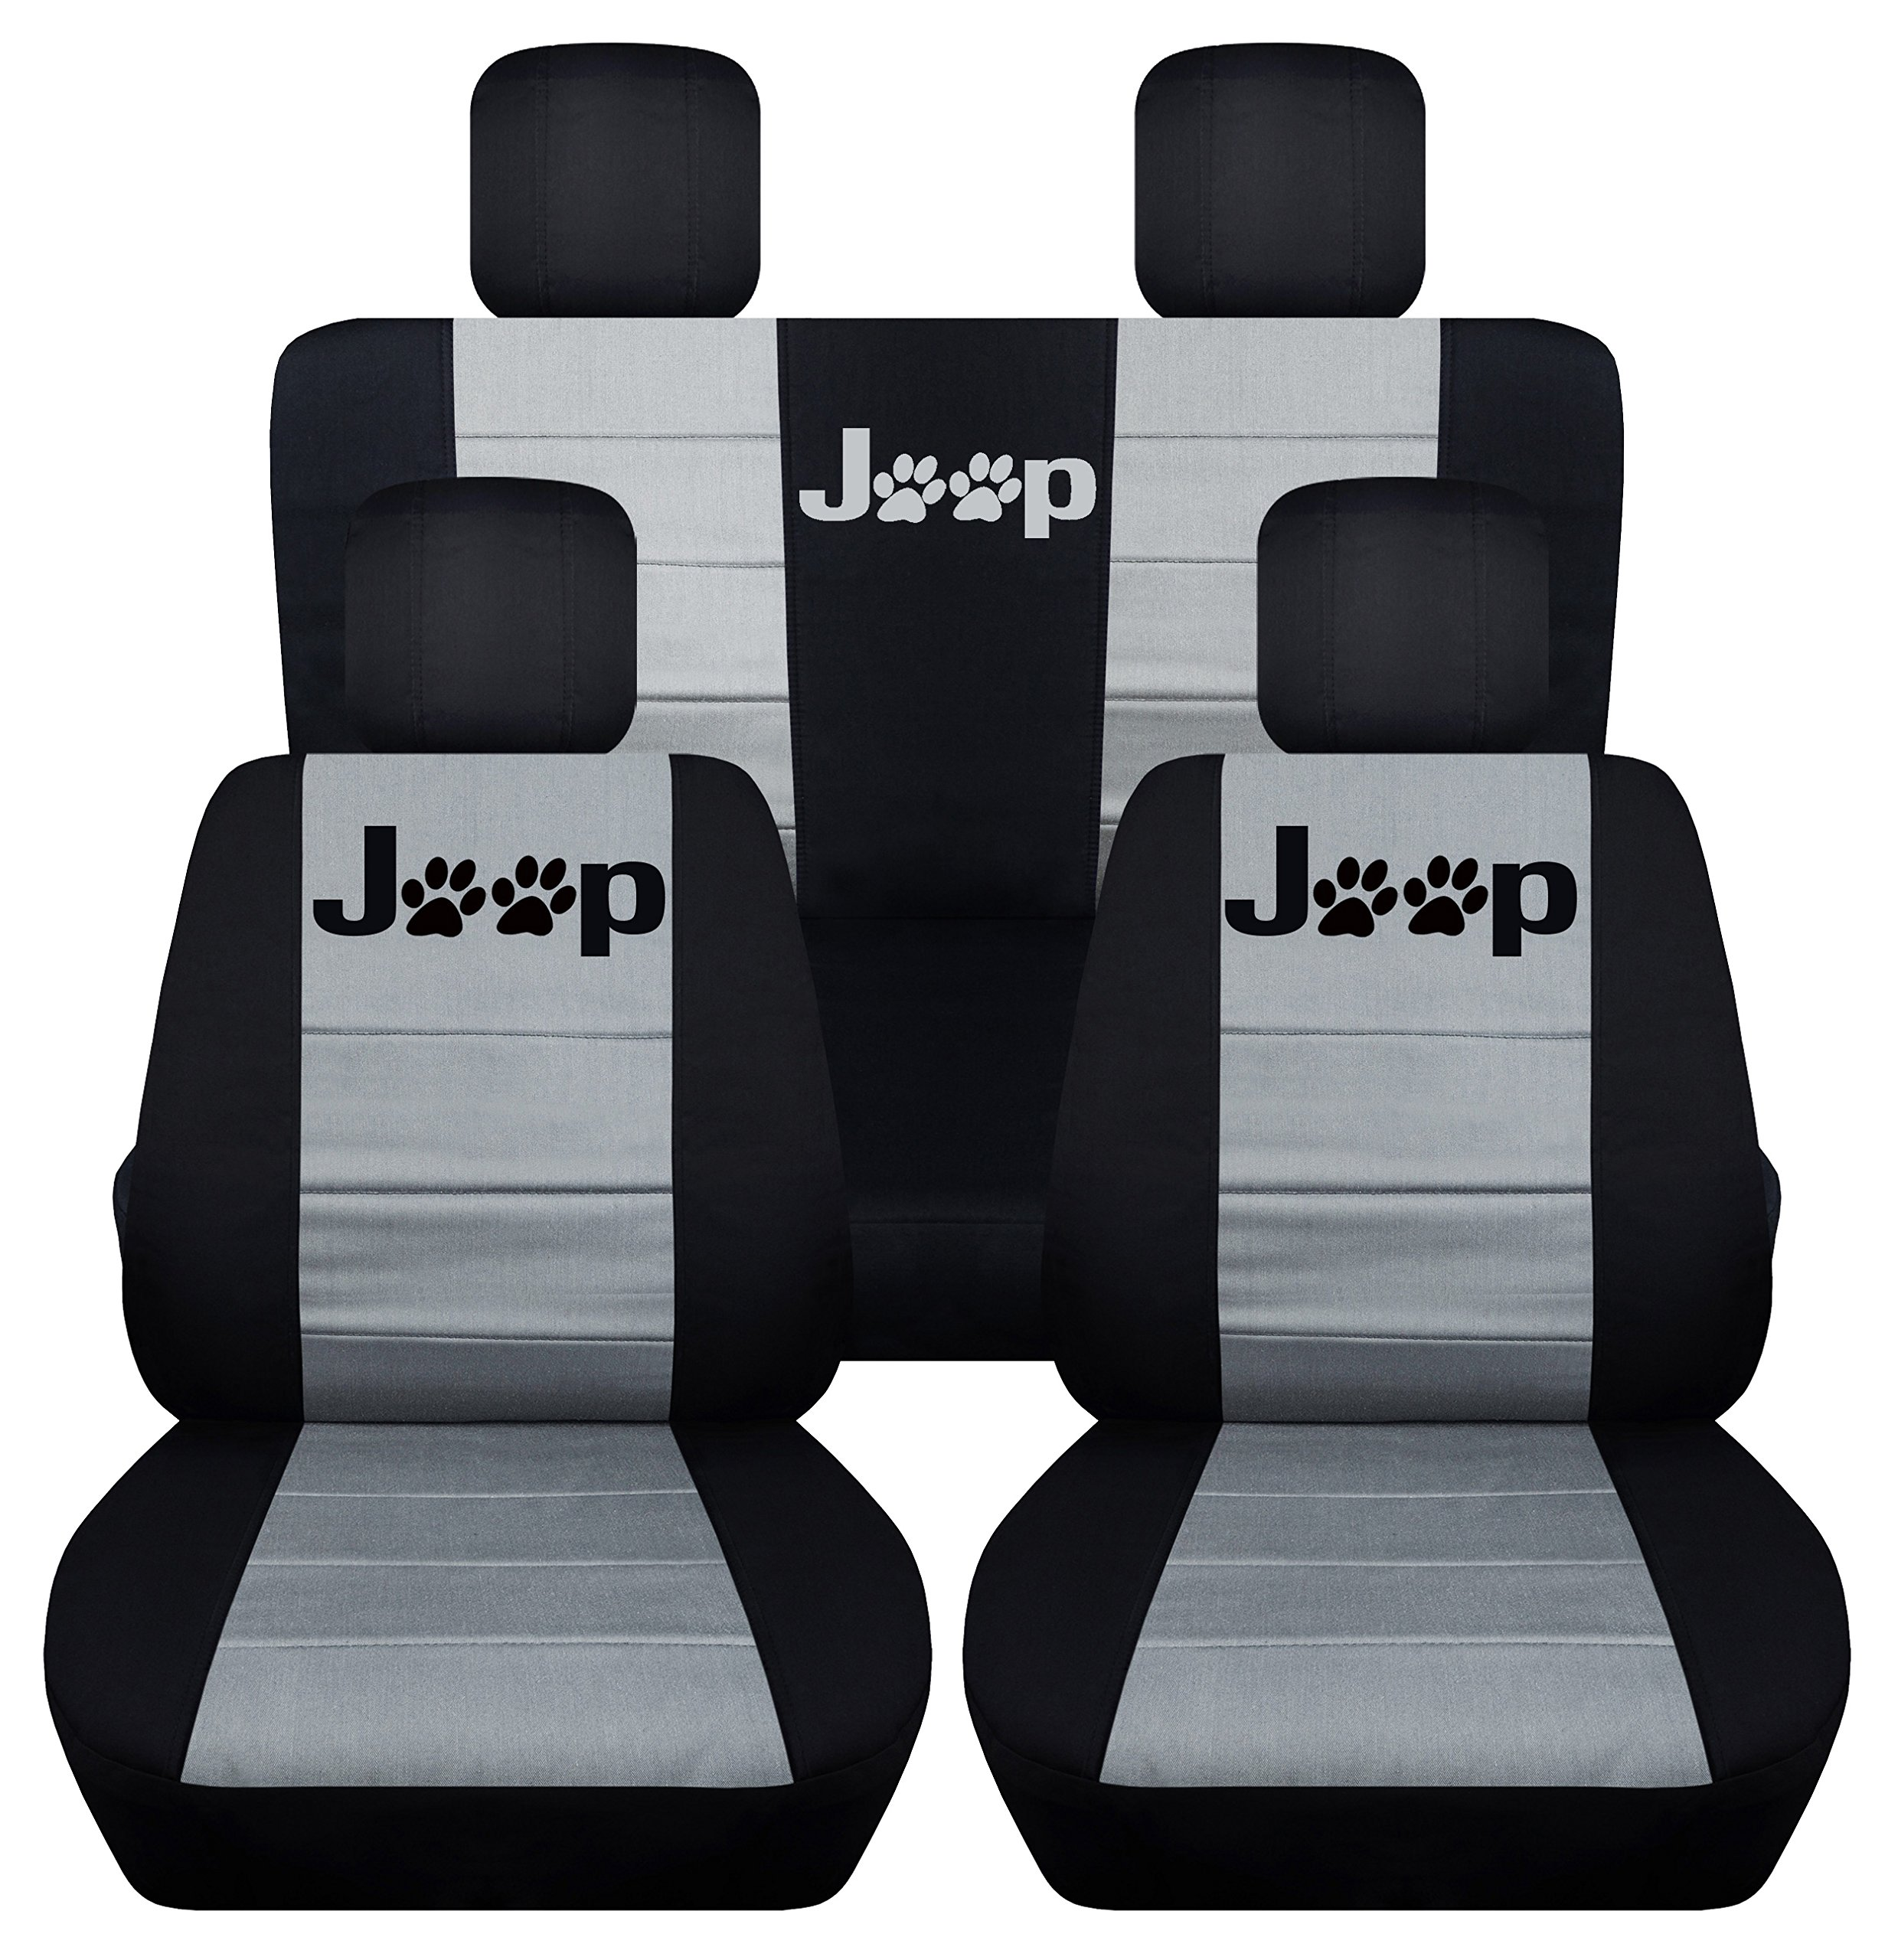 Designcovers Fits 2013 to 2017 Jeep Wrangler 4 Door Paw Print Seat Covers 21 Color Options (Black and Silver)